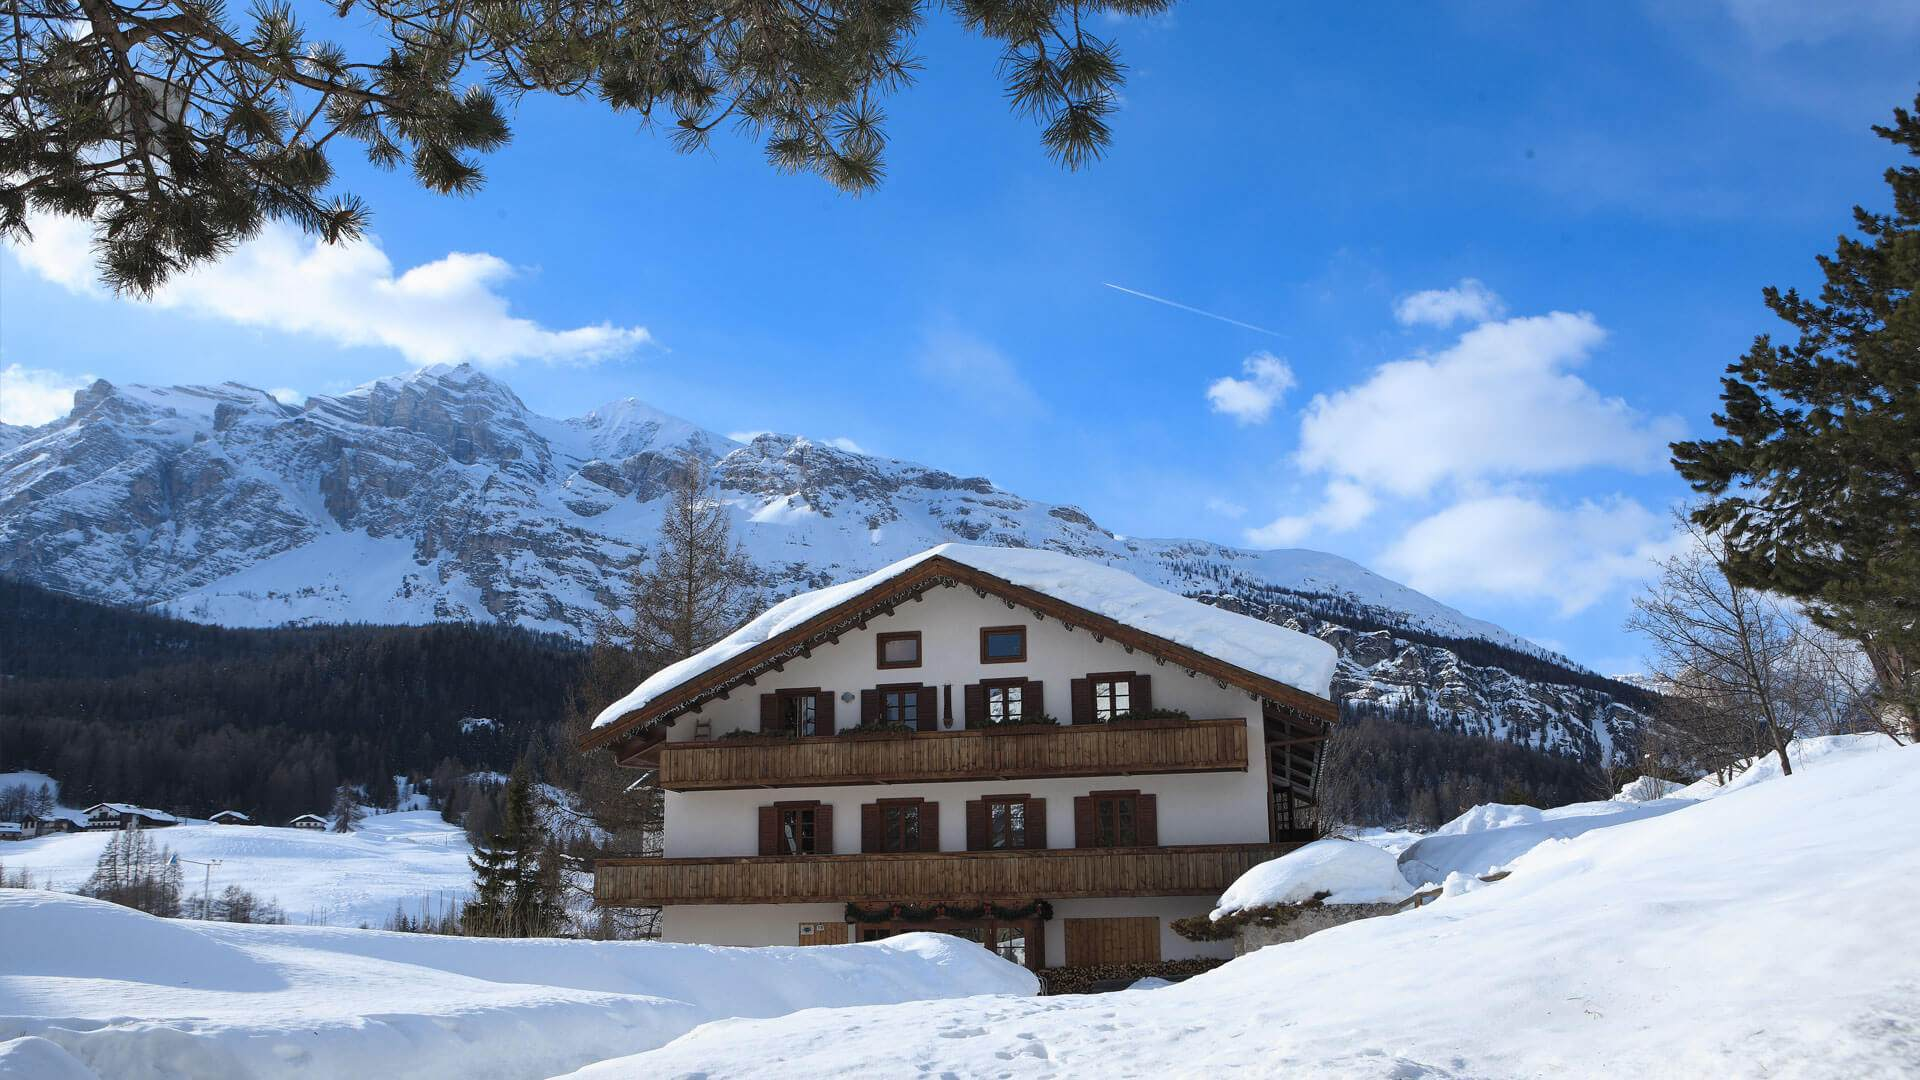 Air Service Center Cortina.Hotel In Cortina With Wellness Centre Hotel With Restaurant In